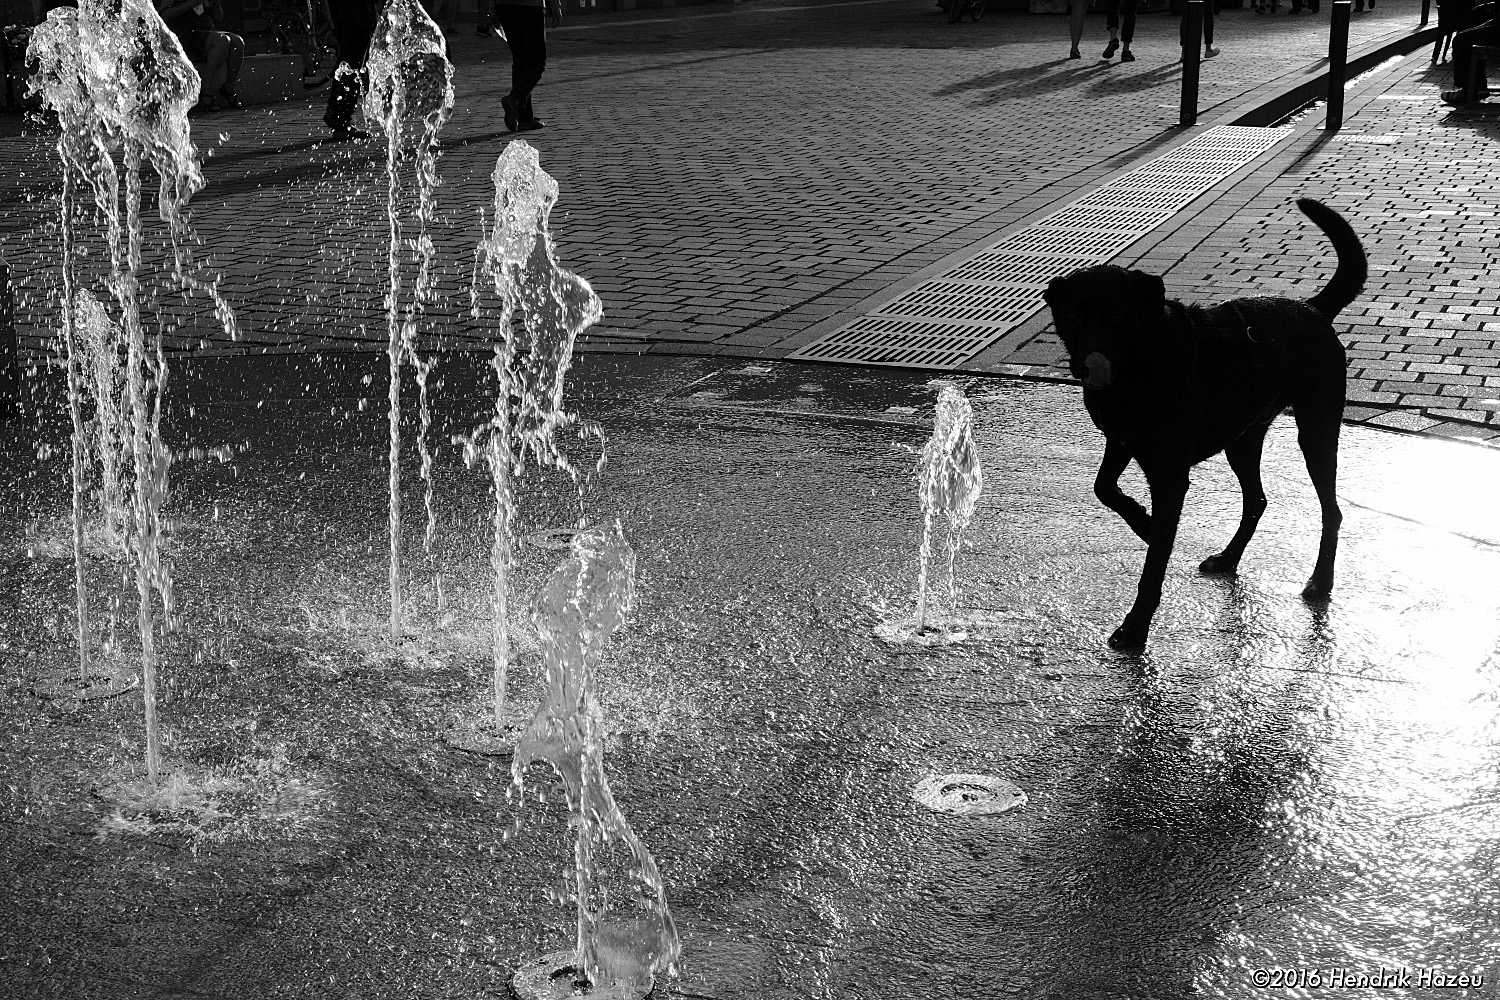 Dogging the Fountain - Fuji X-Pro2, WR 35mm/f2, JPEG SOOC: Jacked highlights & shadows !